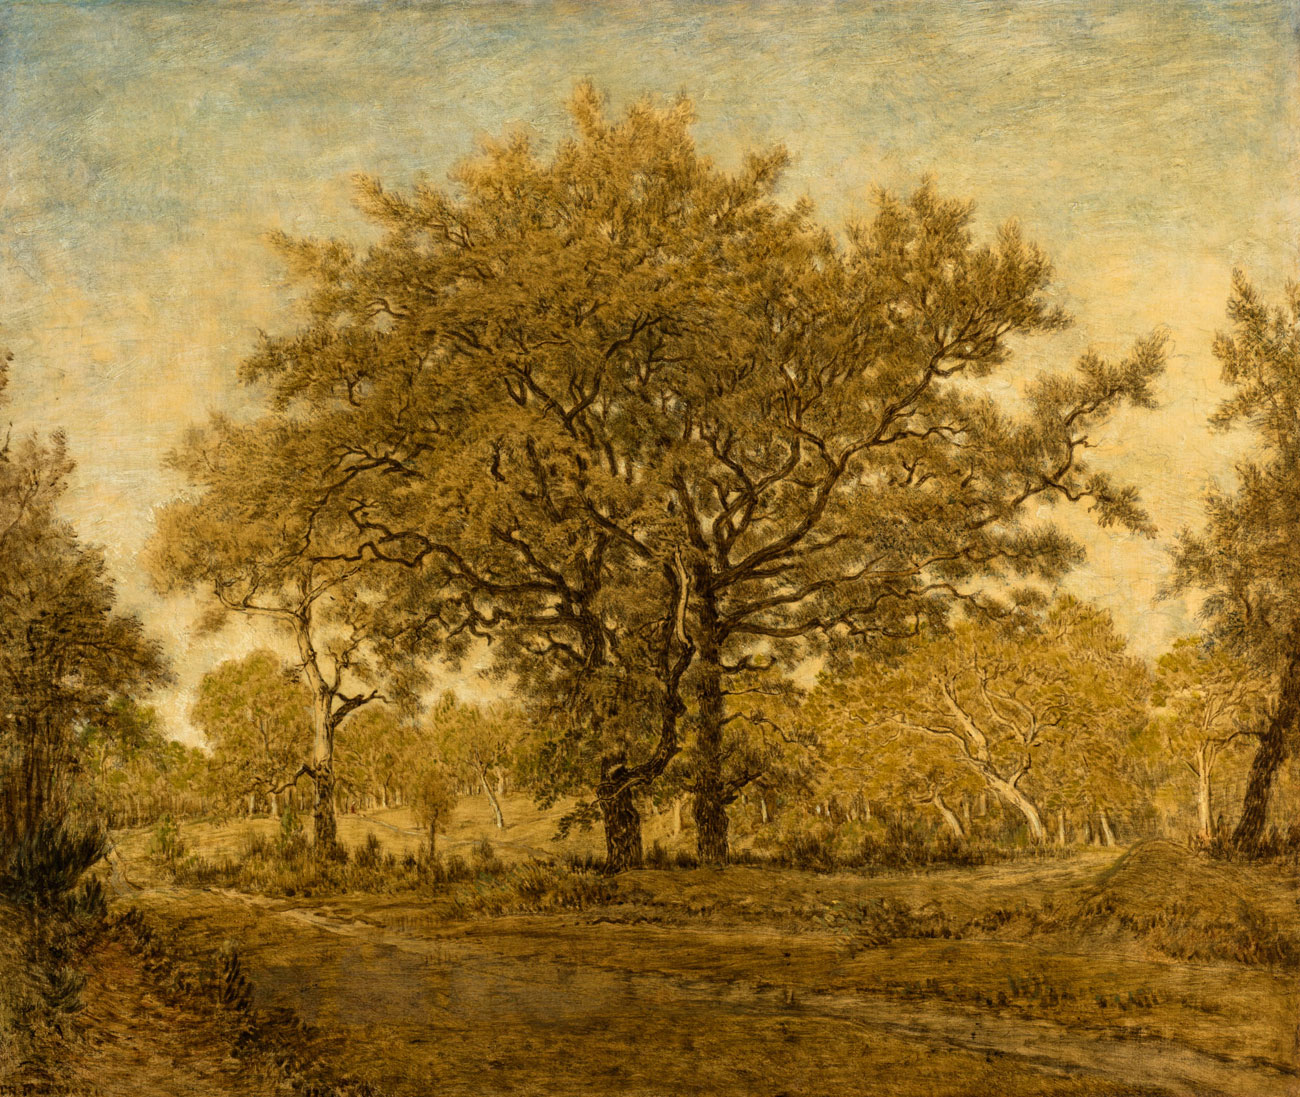 Sepia, two large trees in a field